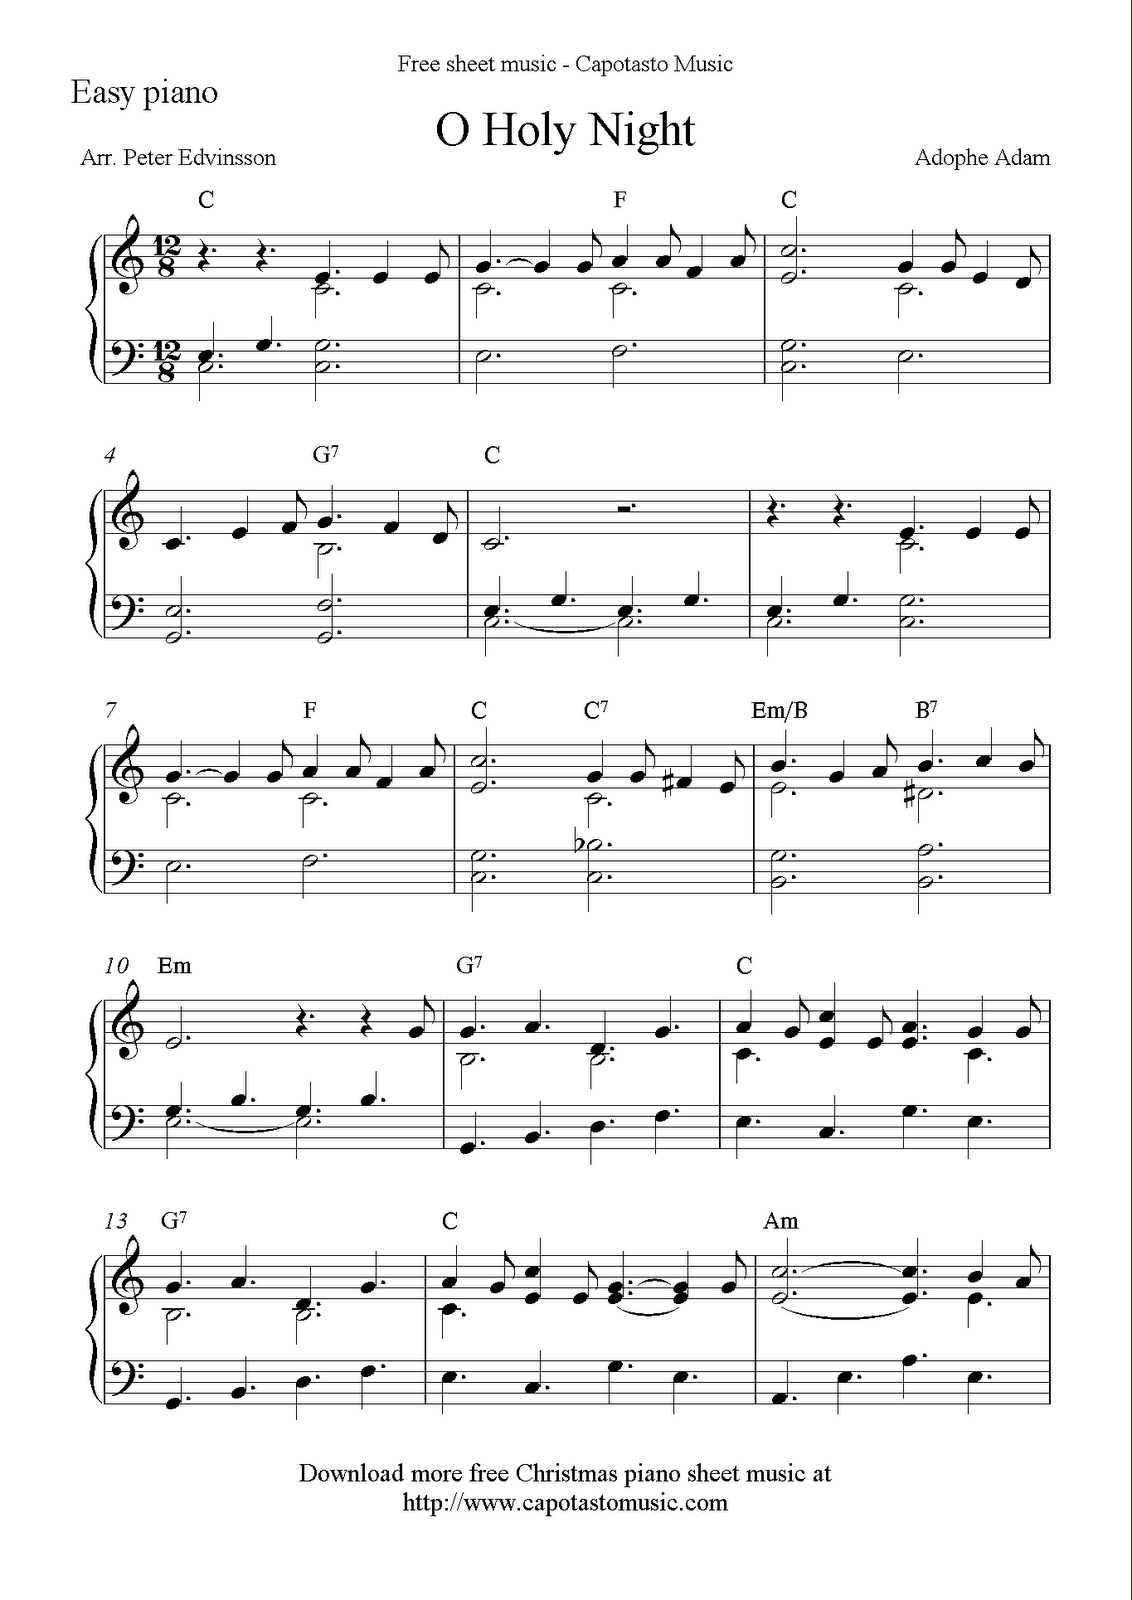 Easy Piano Solo Arrangementpeter Edvinsson Of The Christmas - Frozen Piano Sheet Music Free Printable